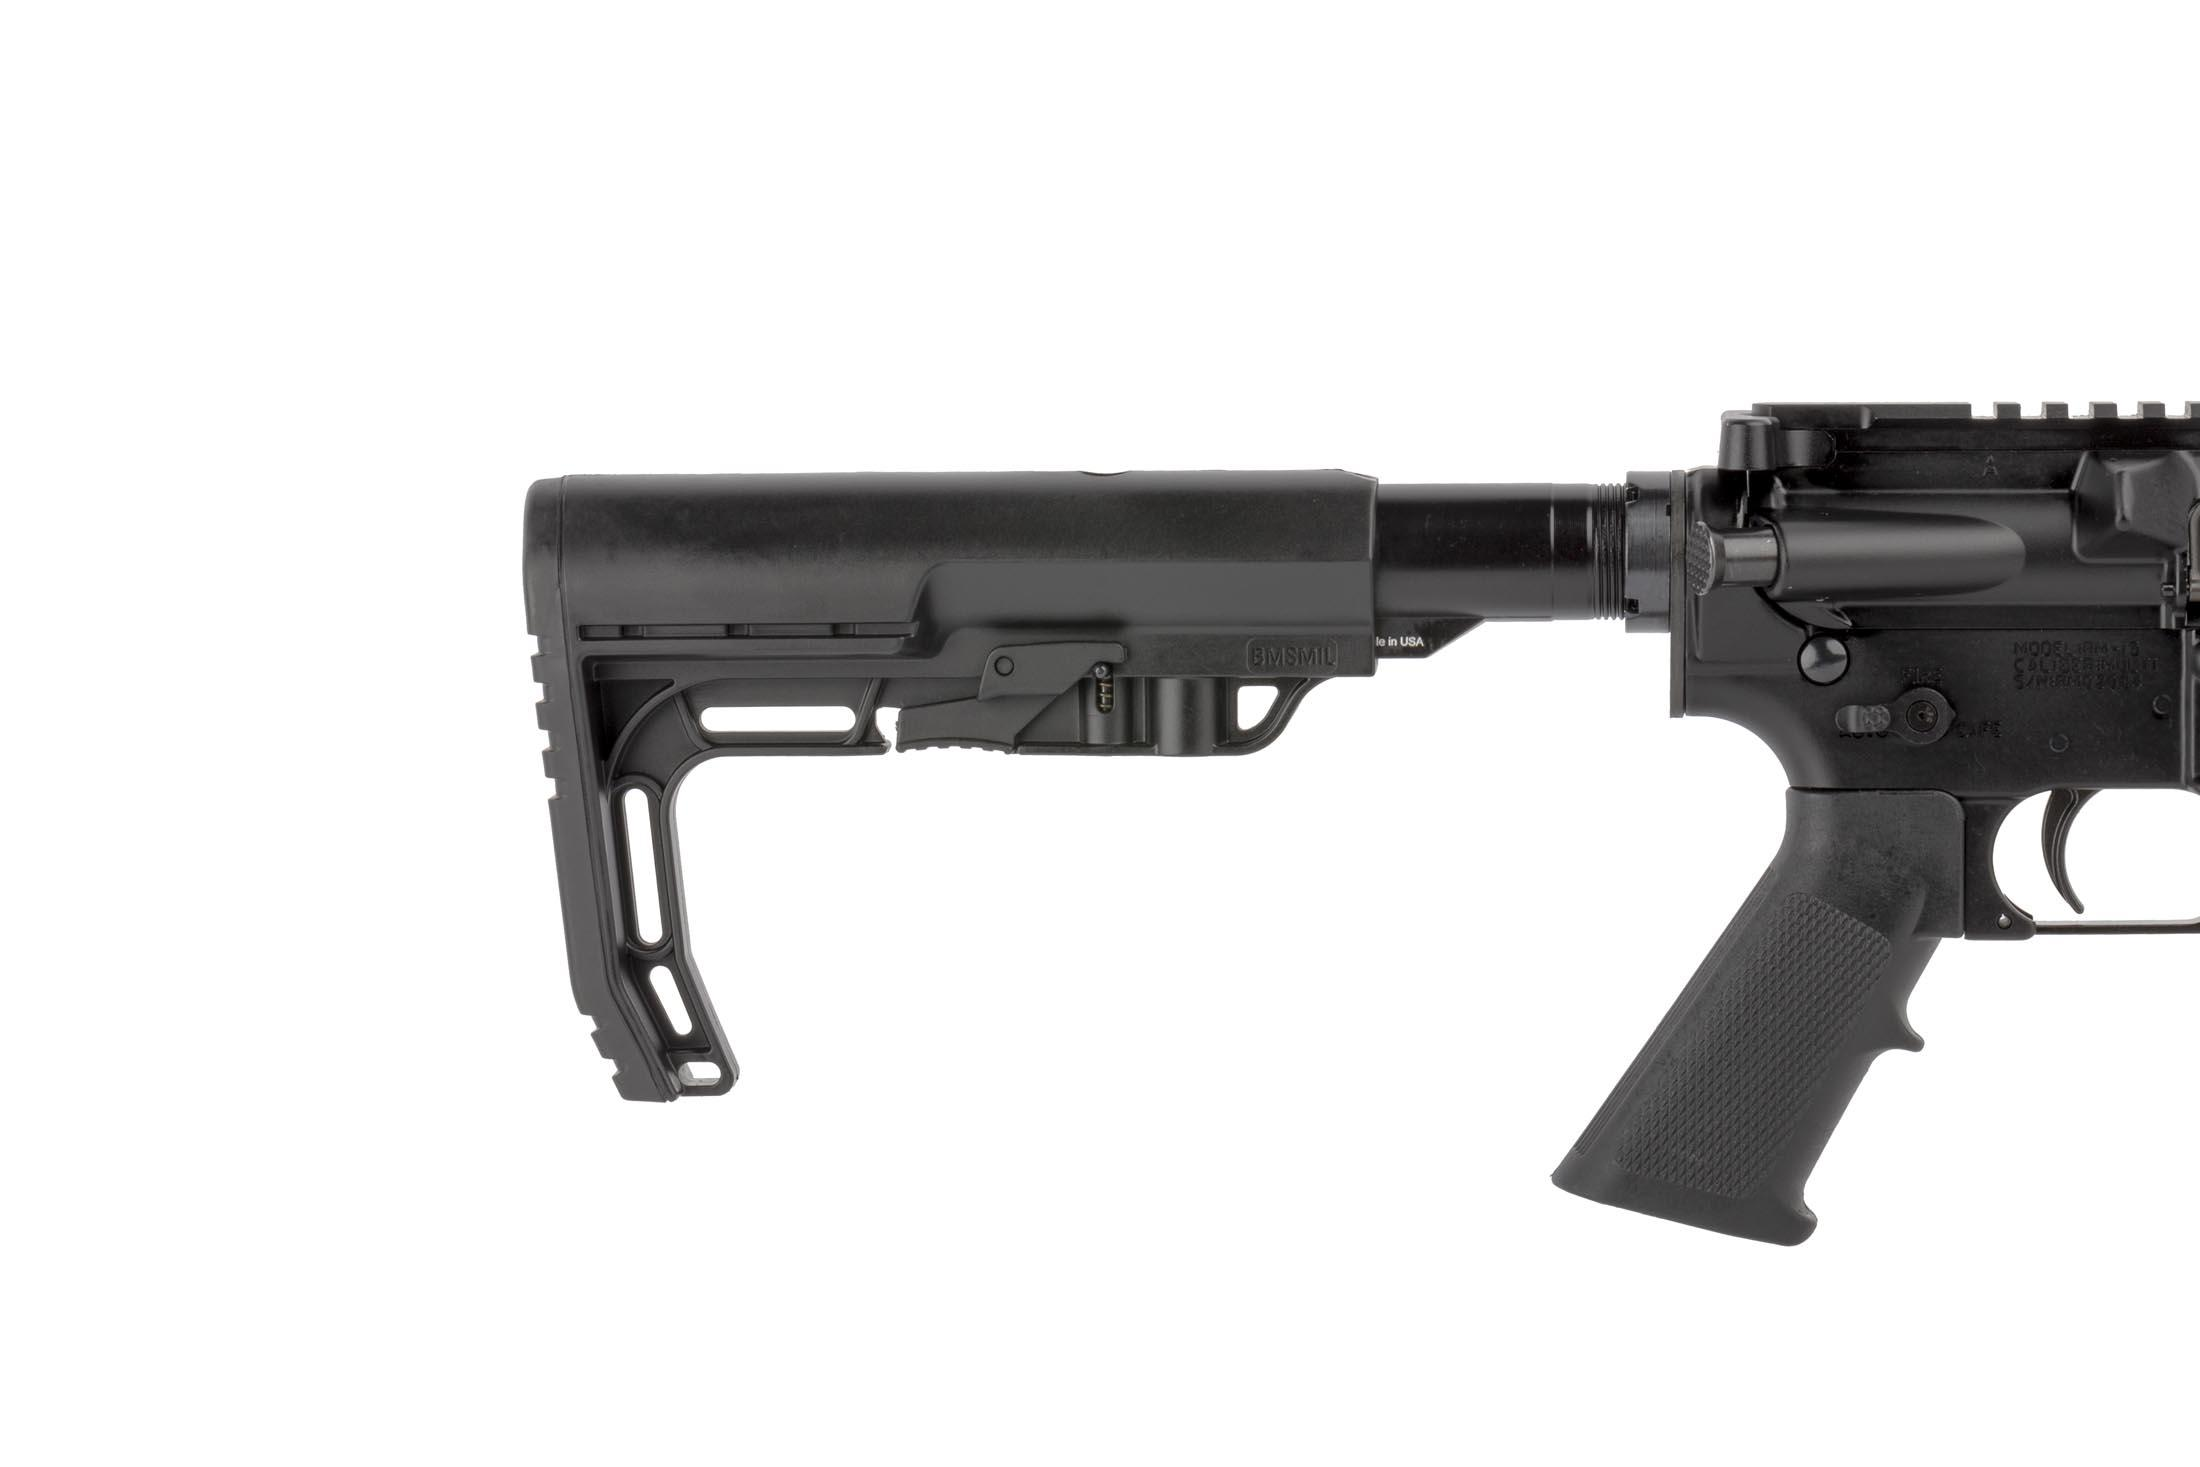 Radical Firearms 7.62x39mm AR-15 rifle with 16in barrel has an A2 rifle grip and MFT carbine stock